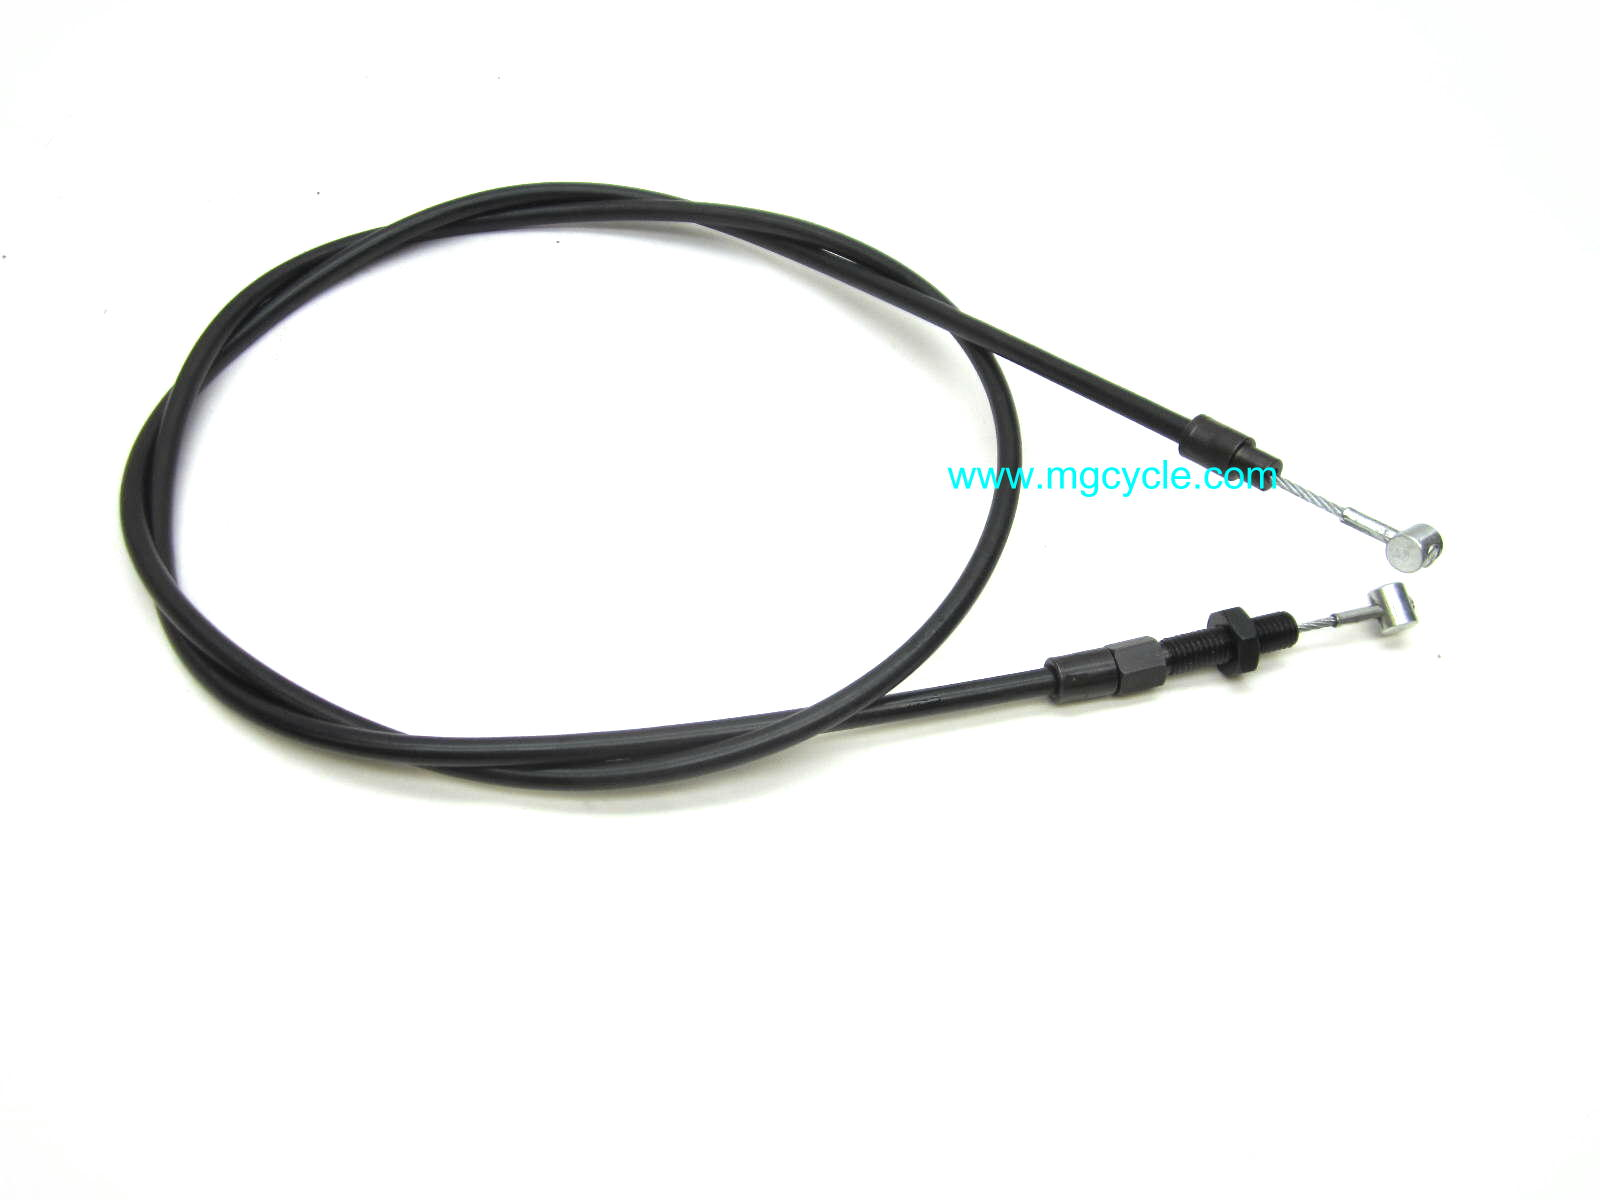 Clutch cable most 1100cc California models 1998 -2010 GU03093045